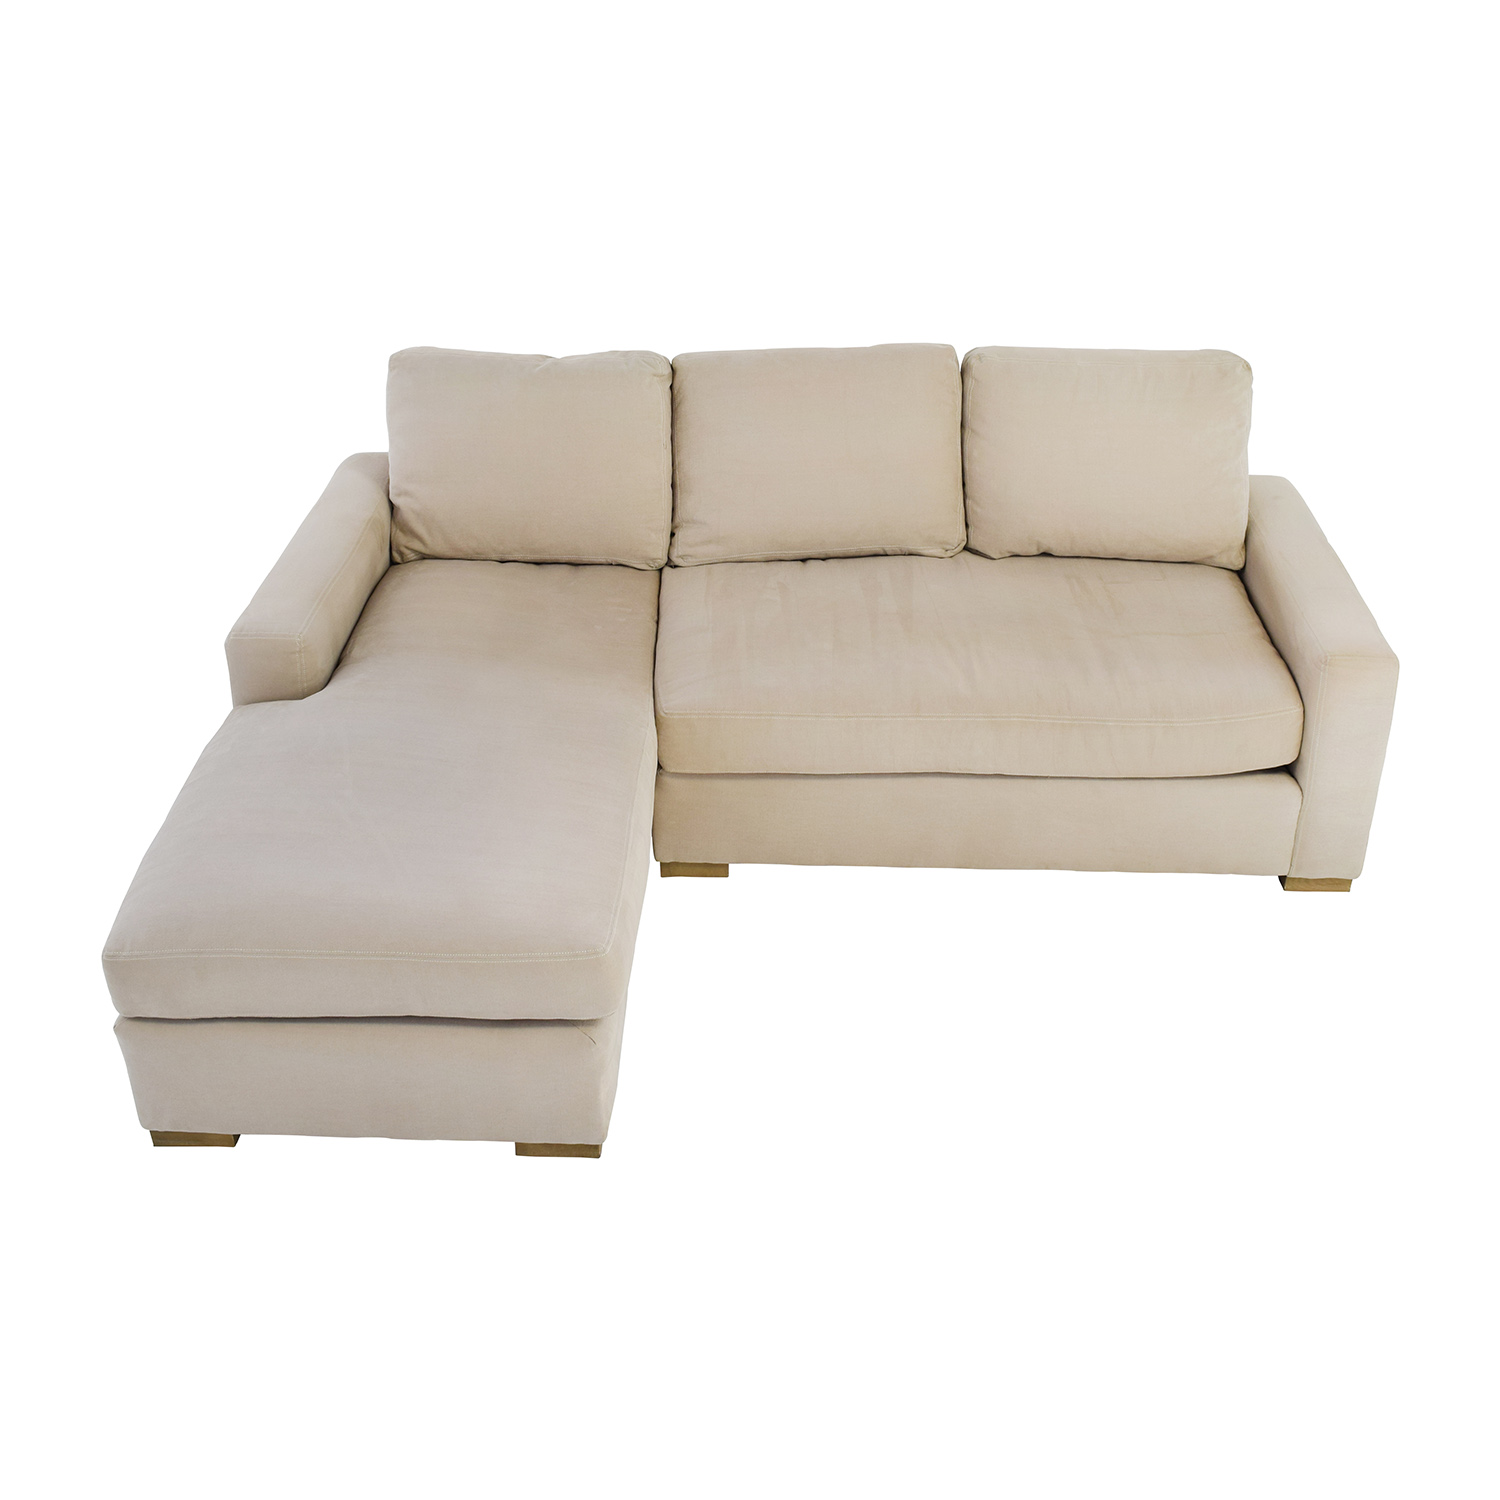 Restoration Hardware Restoration Hardware Petite Maxwell Beige Chaise Sectional for sale